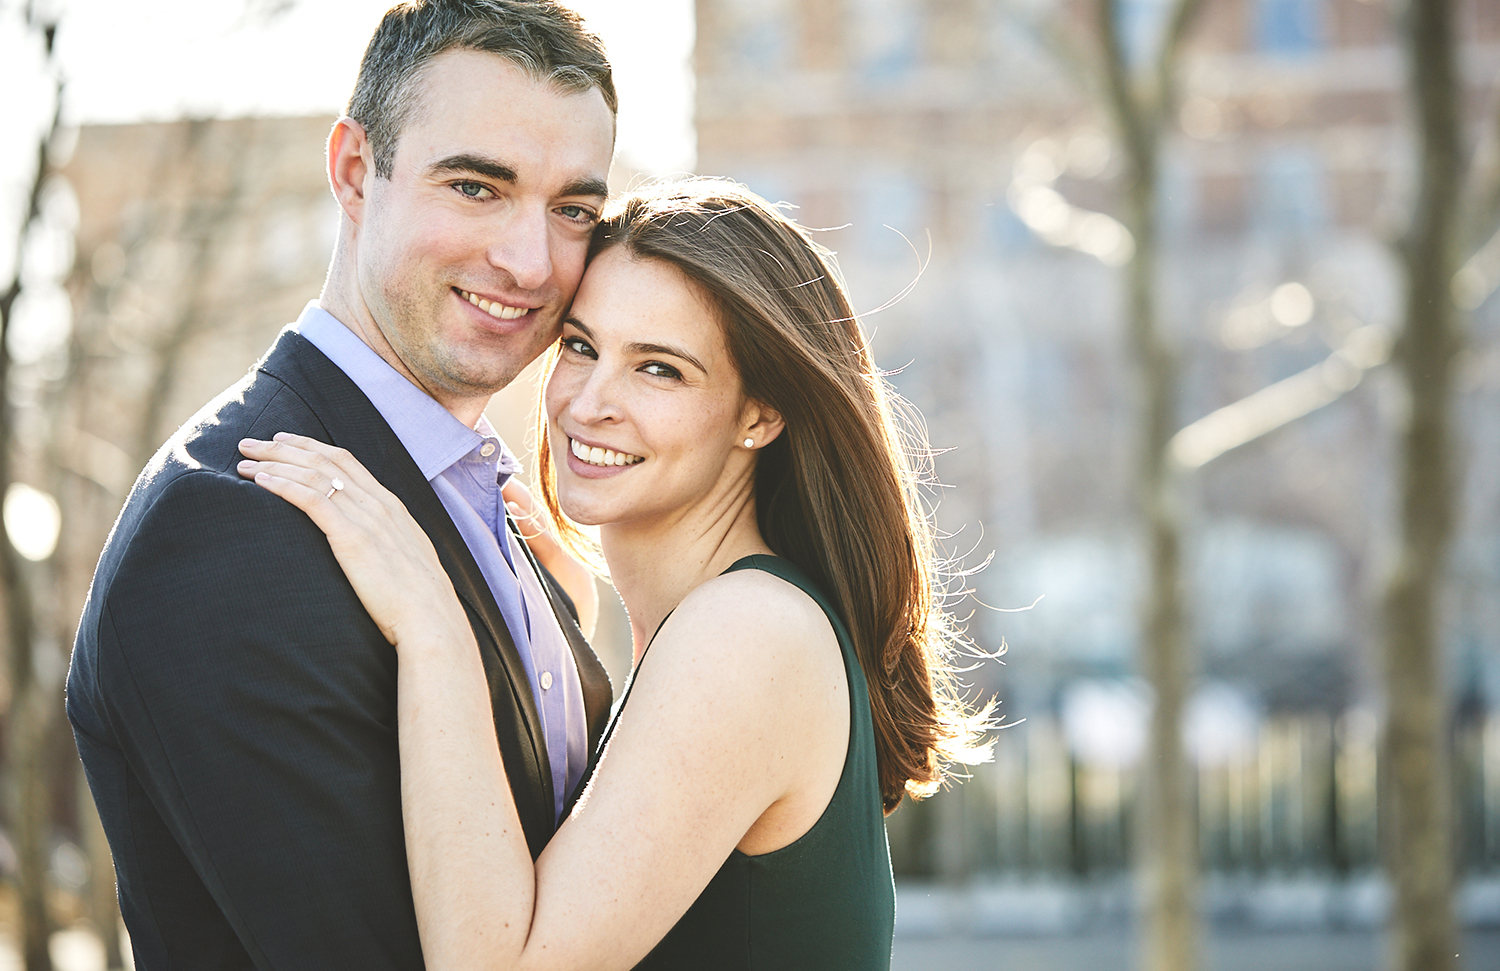 180422_StevensInstitureofTechnologyEngagementPhotography_HobokenEngagement Photography_By_BriJohnsonWeddings_0010.jpg